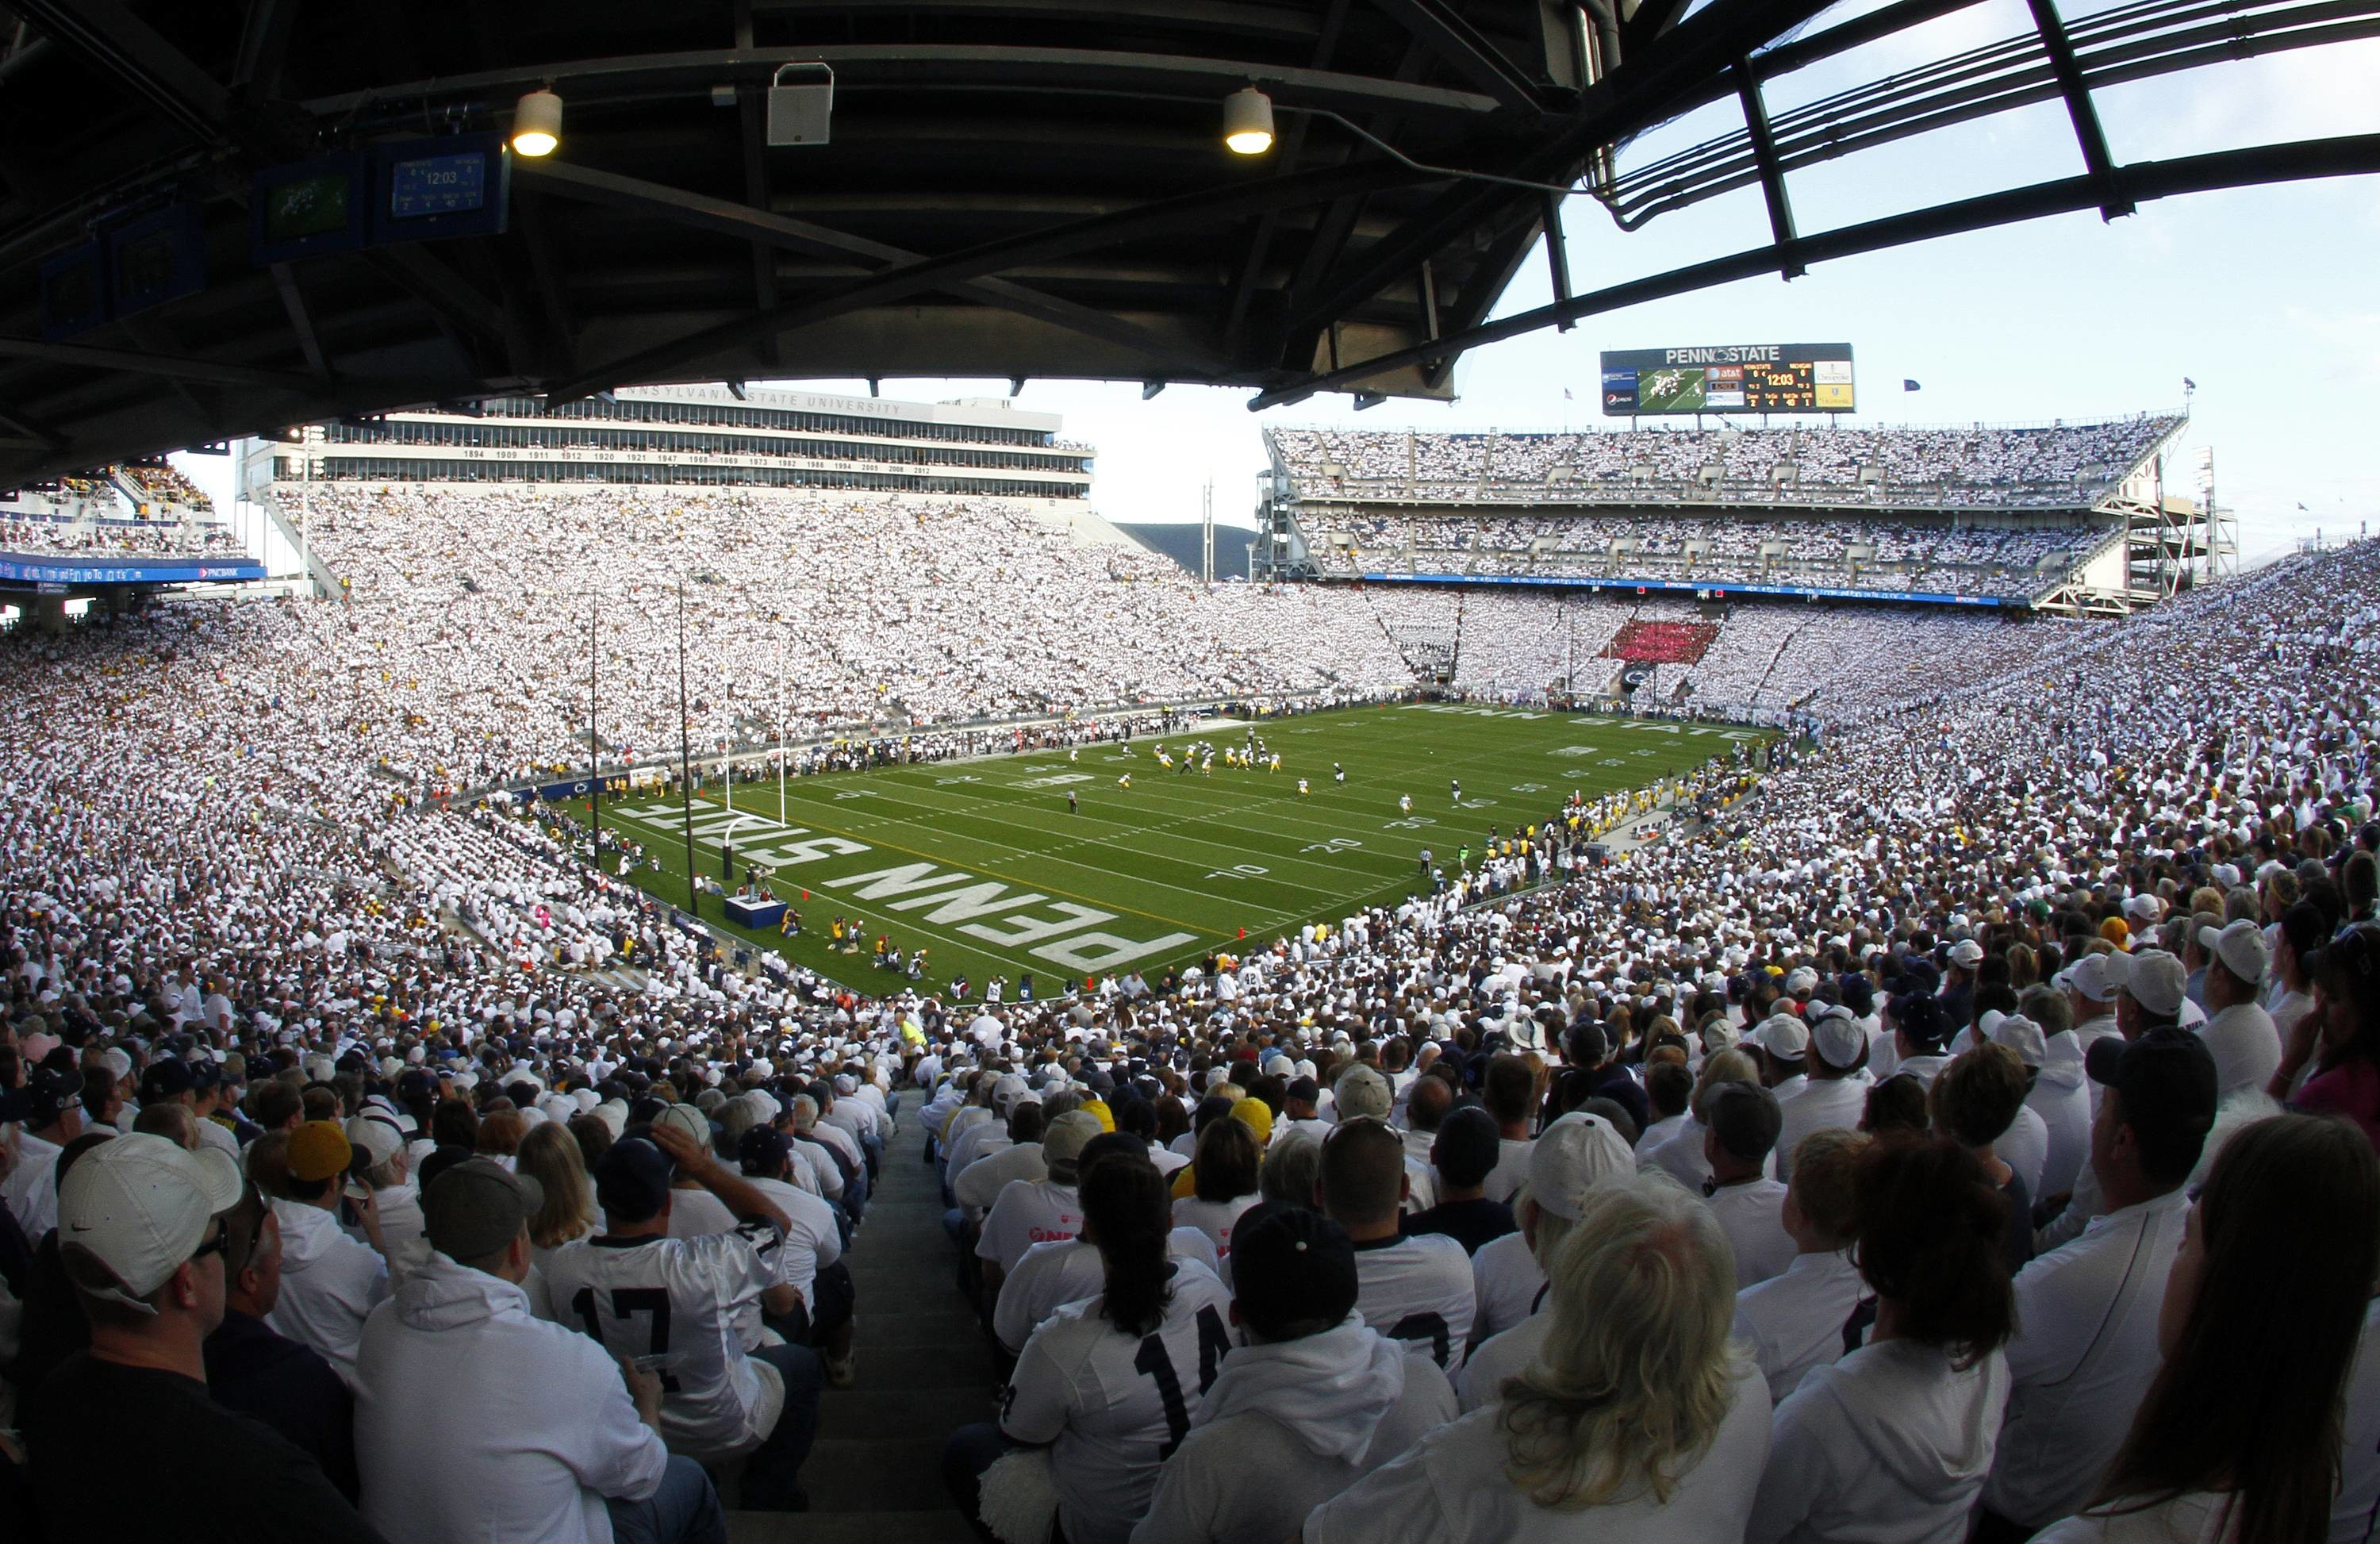 Penn state wallpaper unrivaled penn – funny save the planet pictures